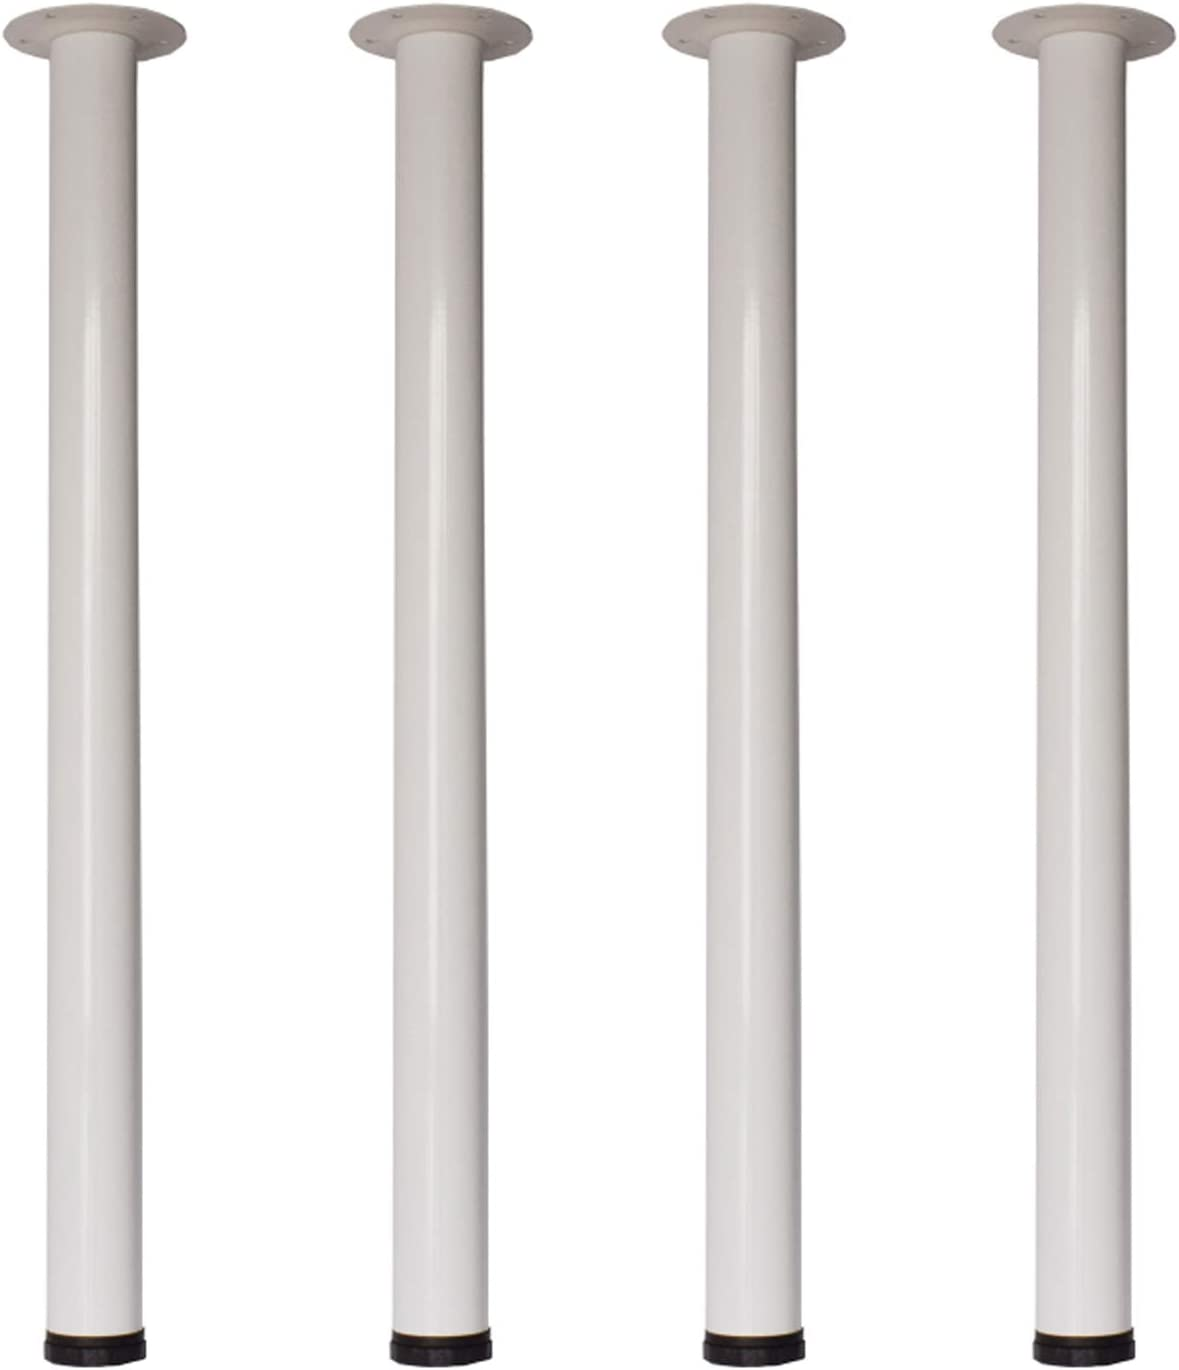 28 Inch Height Furniture Legs,Home Office Metal Heavy Duty, Mid Century Adjustable Modern Durable Iron Legs for Computer Desk,Coffee Table,Kitchen Table(Set of 4)-White